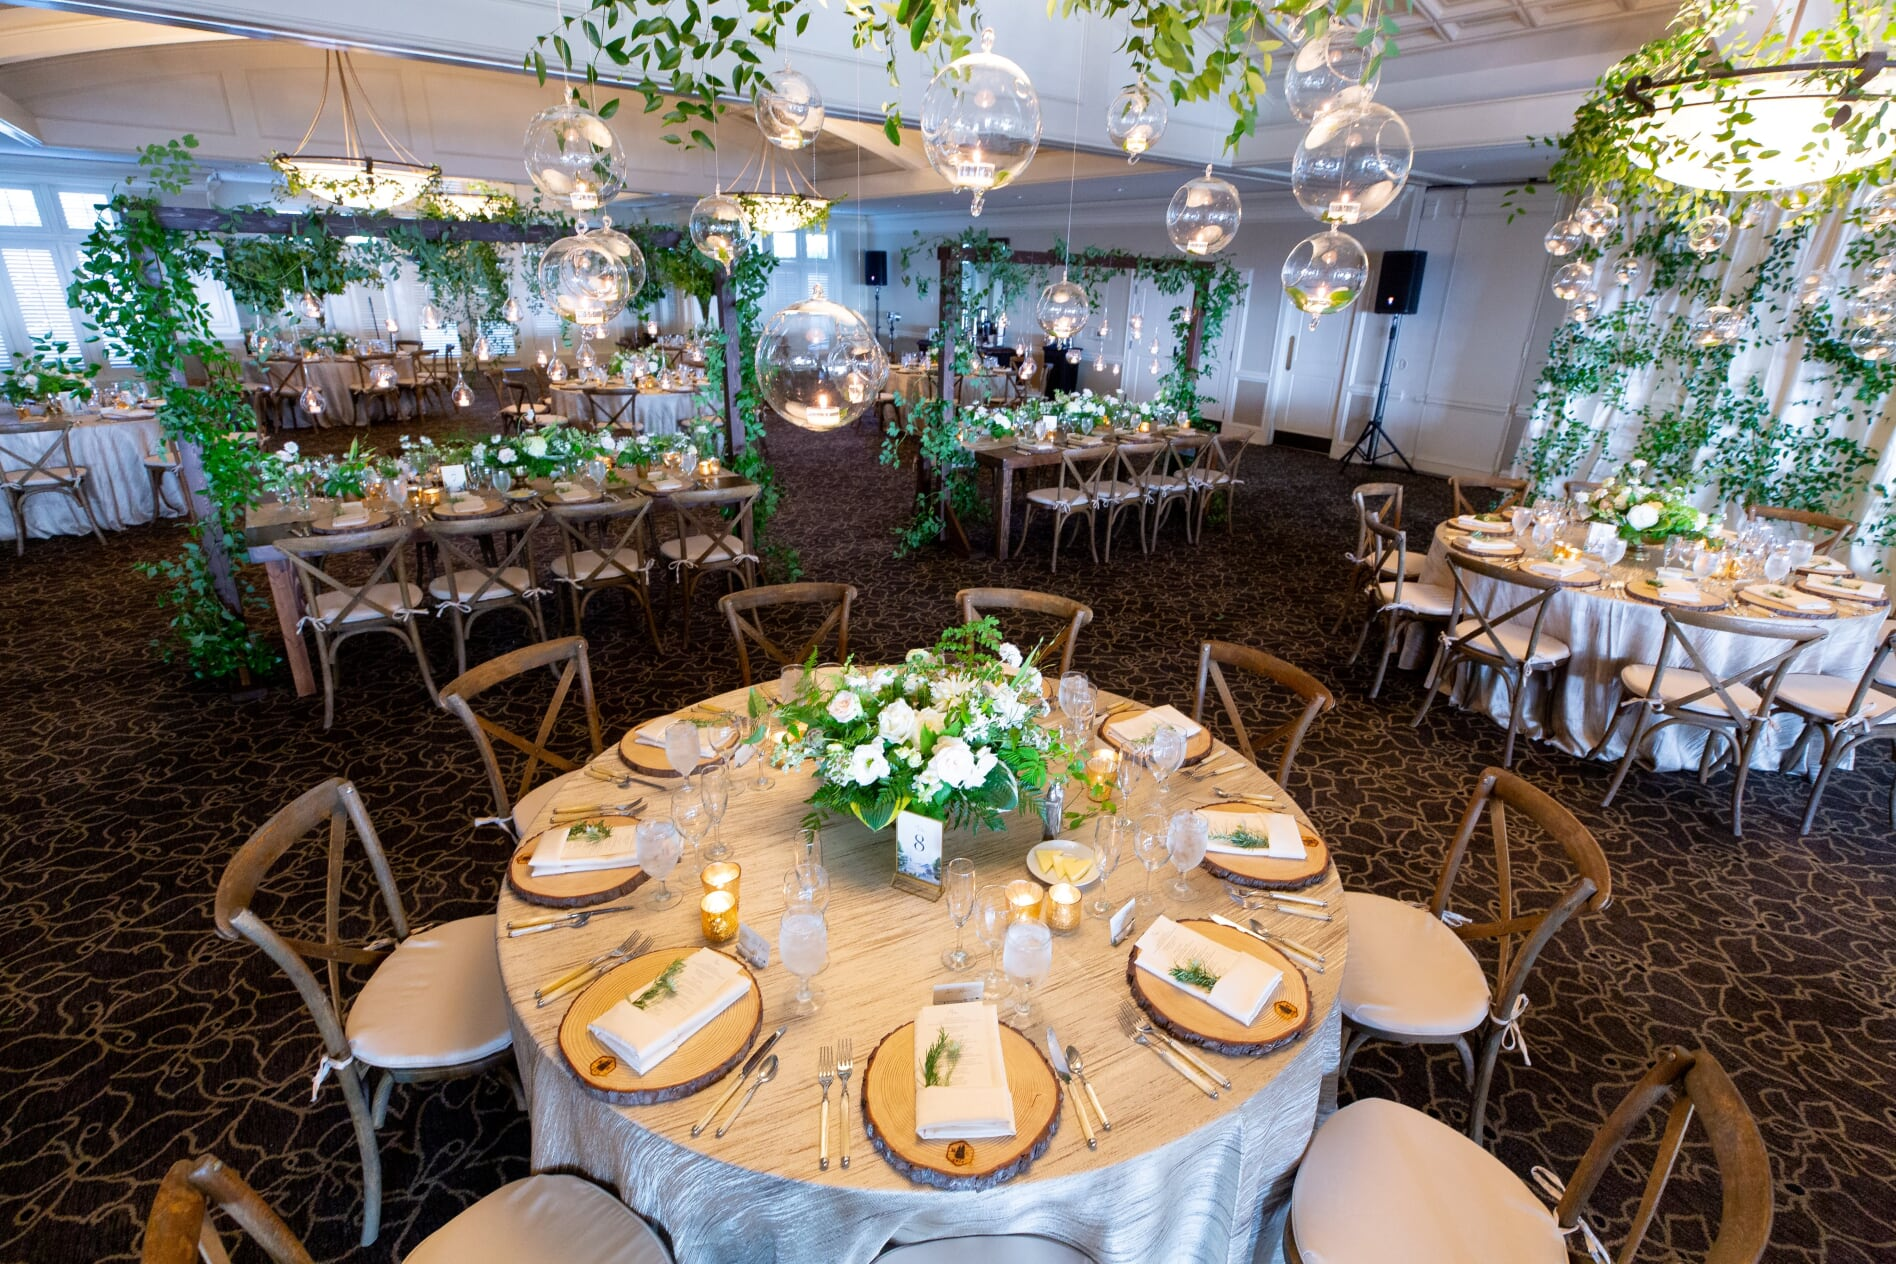 wedding reception with hanging greenery, hanging votives, and wooden chairs